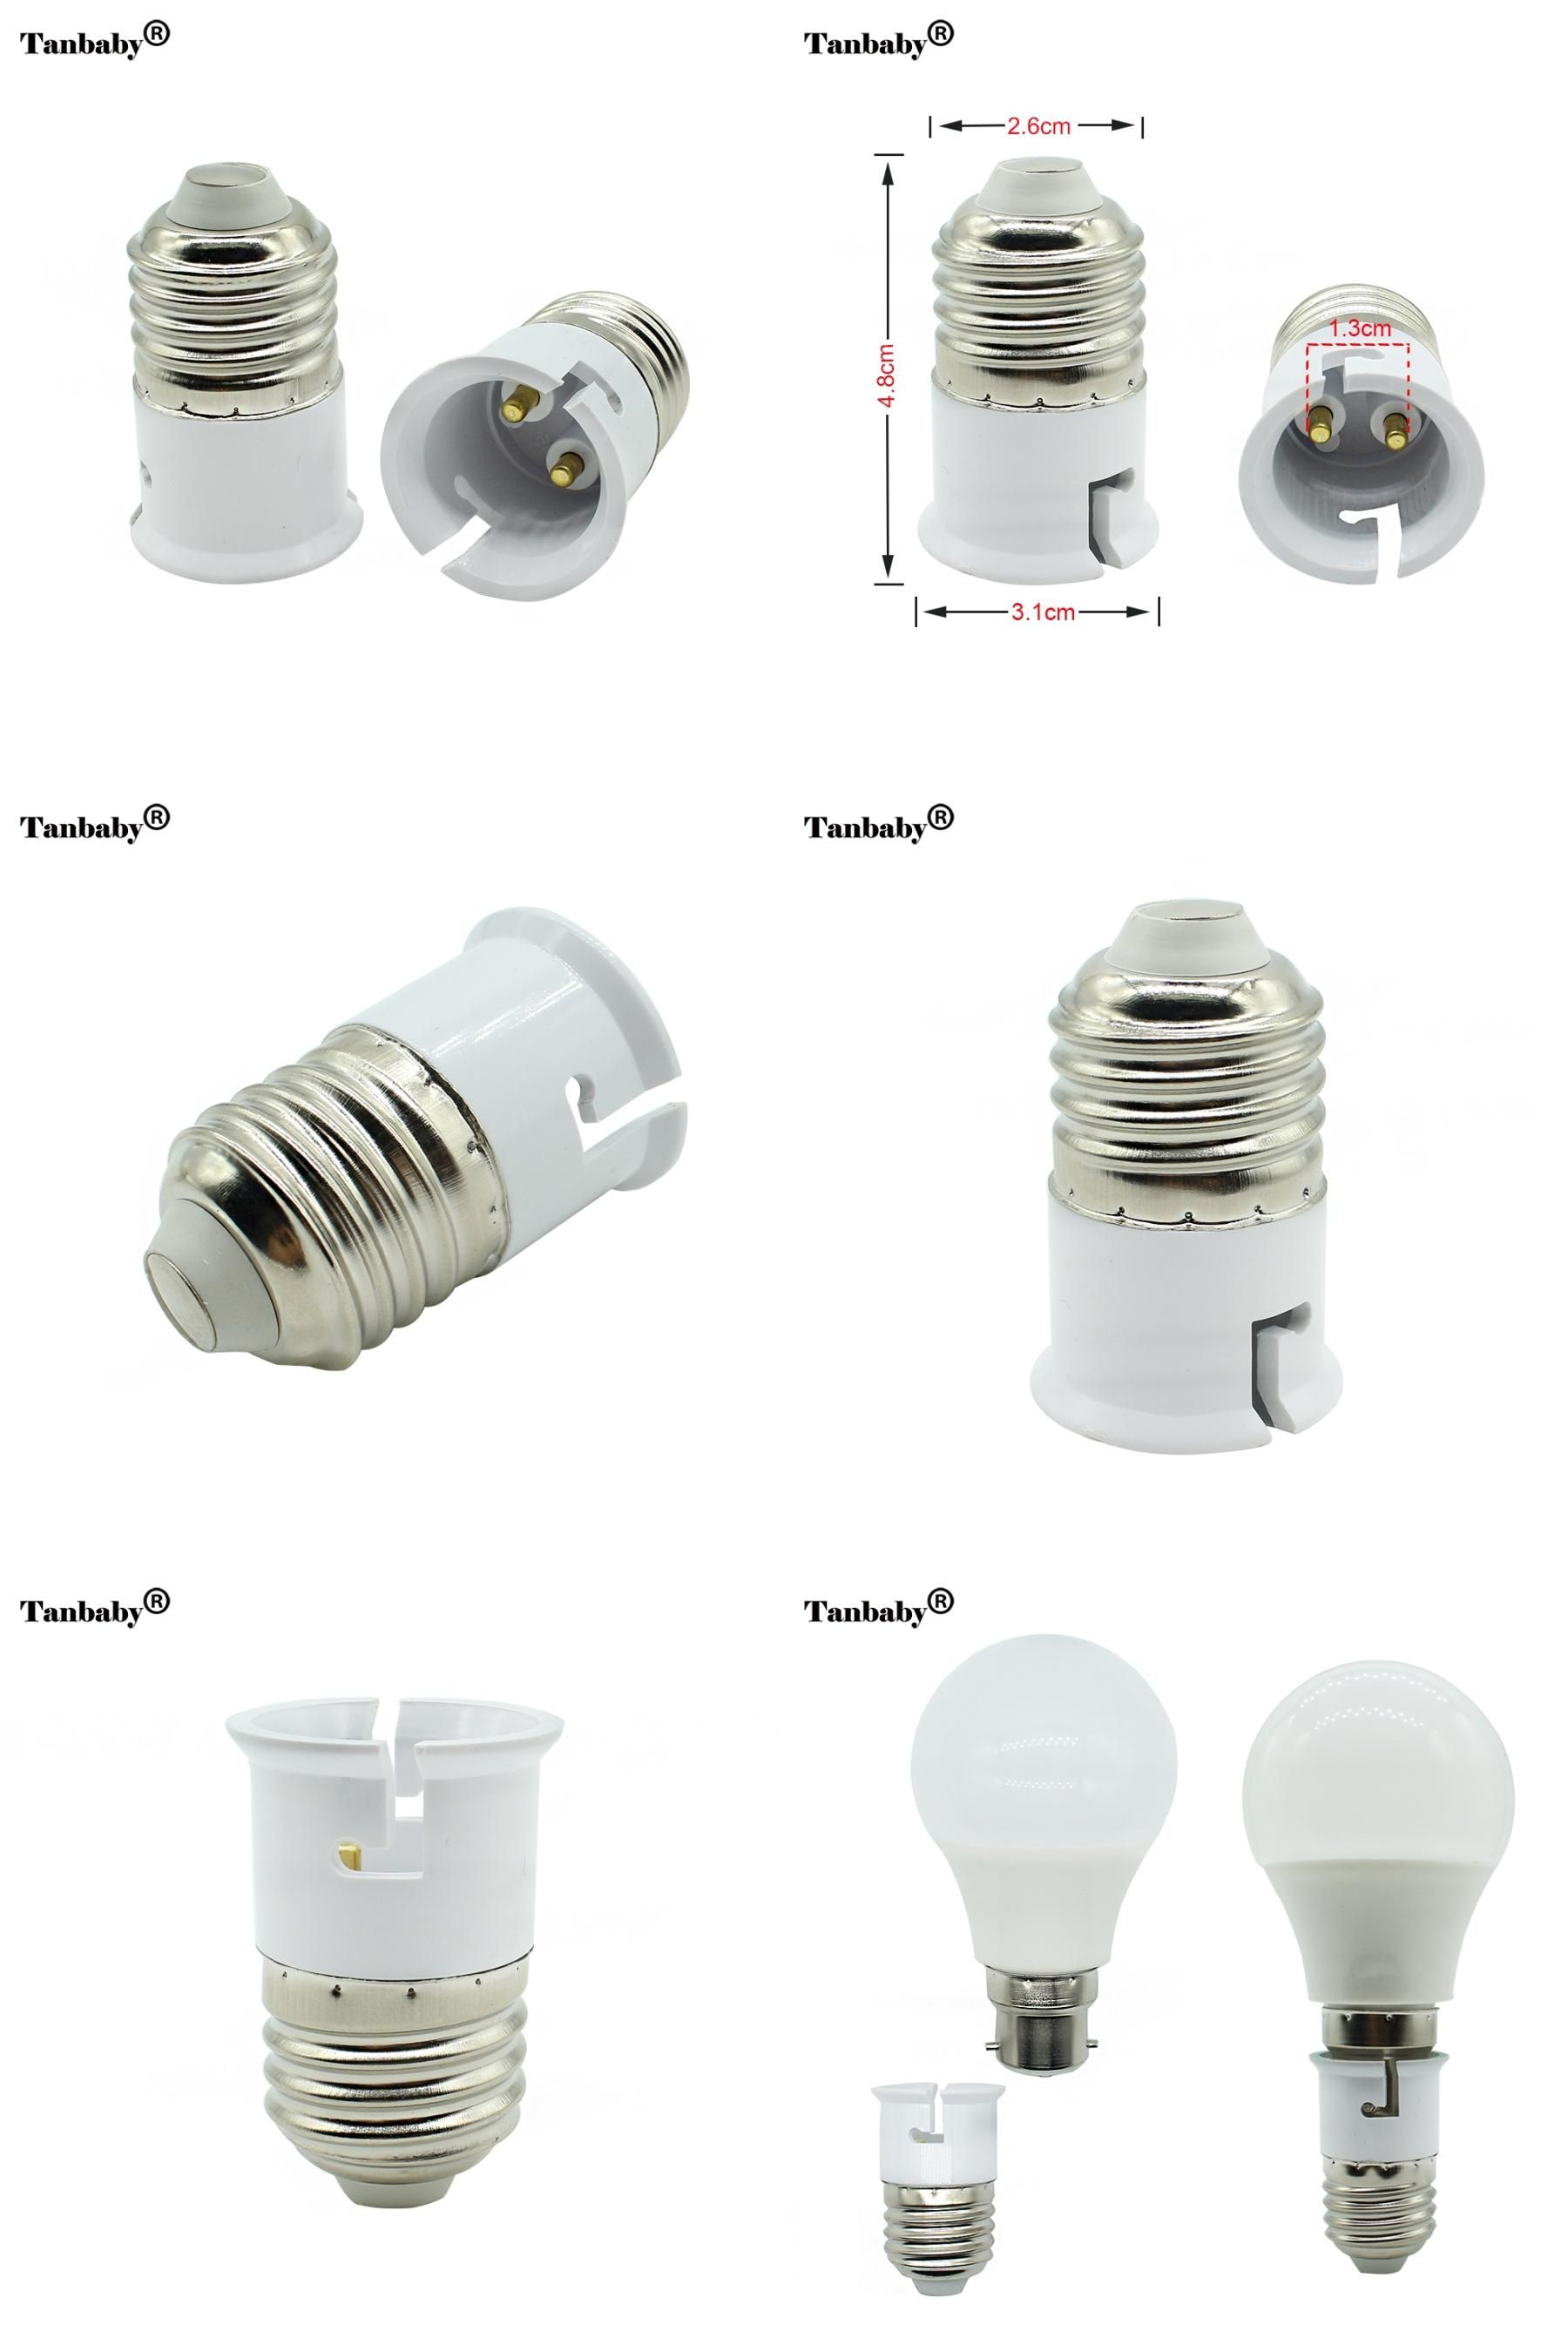 Visit To Buy Tanbaby 1pcs E27 To B22 Fireproof Material Lamp Holder Converter Socket Base Type Adapter Conversion Light Bulb Adv Bulb Adapter Lamp Bulb Lamp